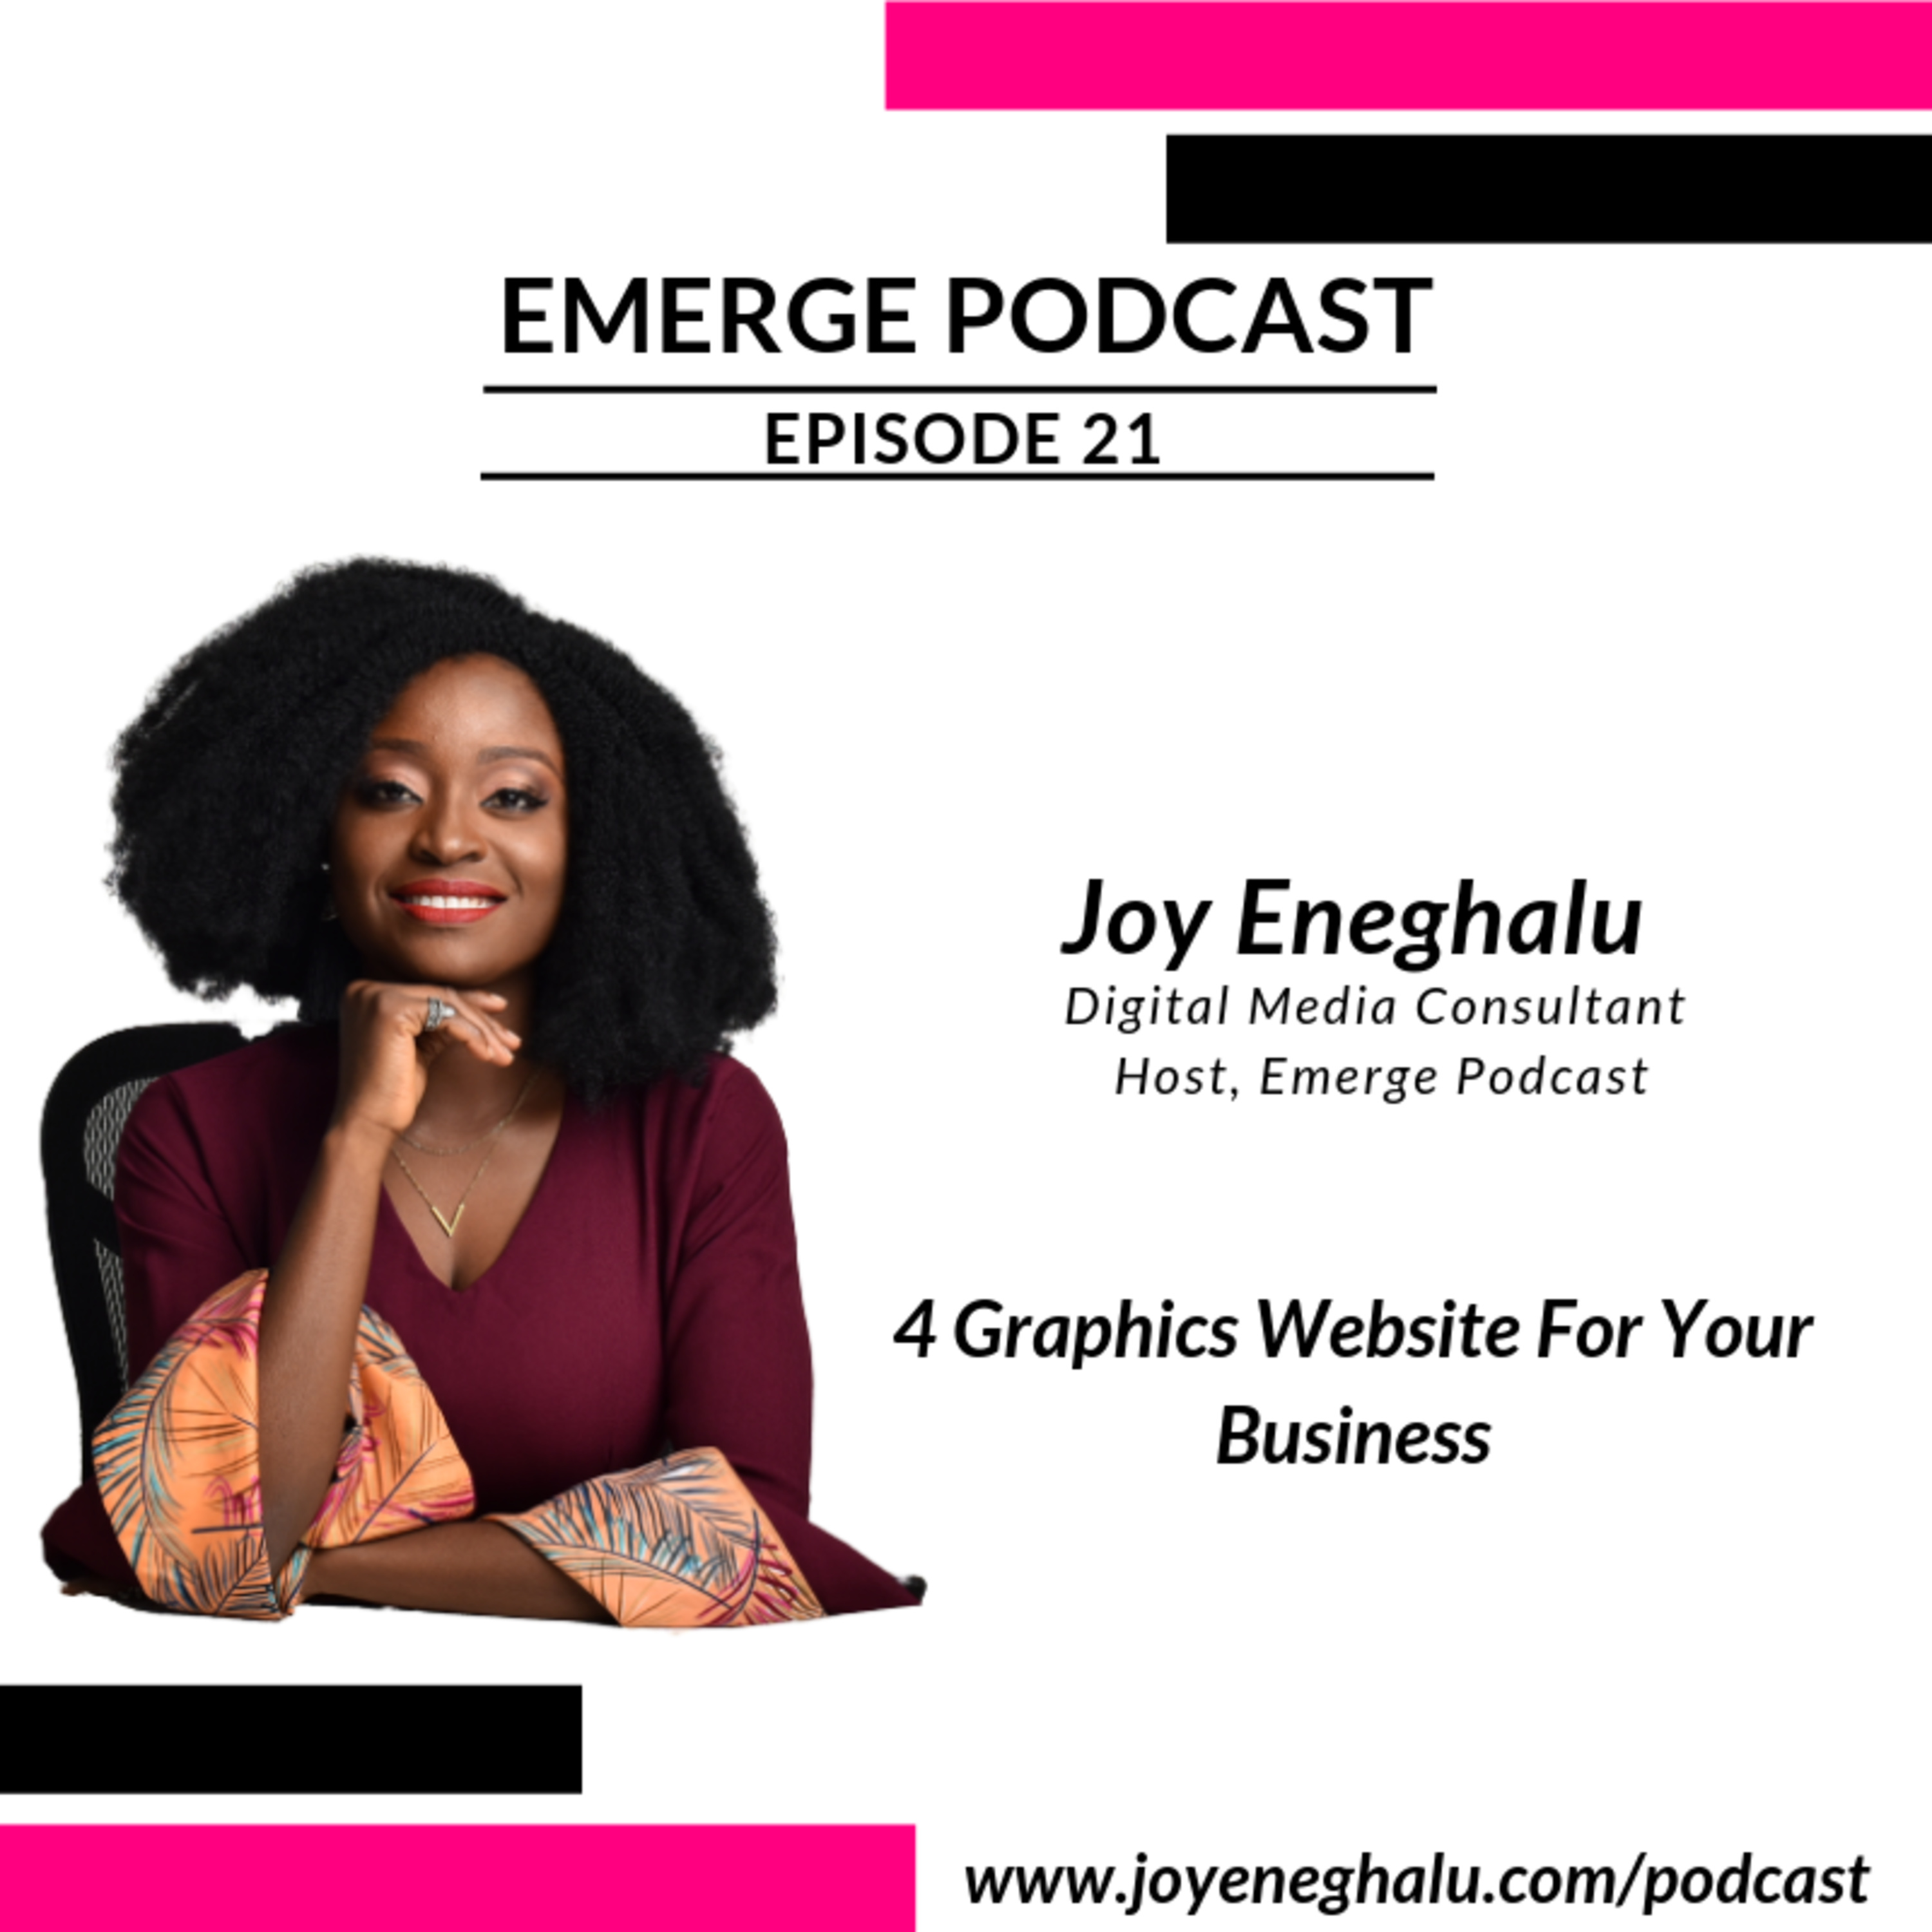 EP 21 - 4 Graphics Website For Your Business